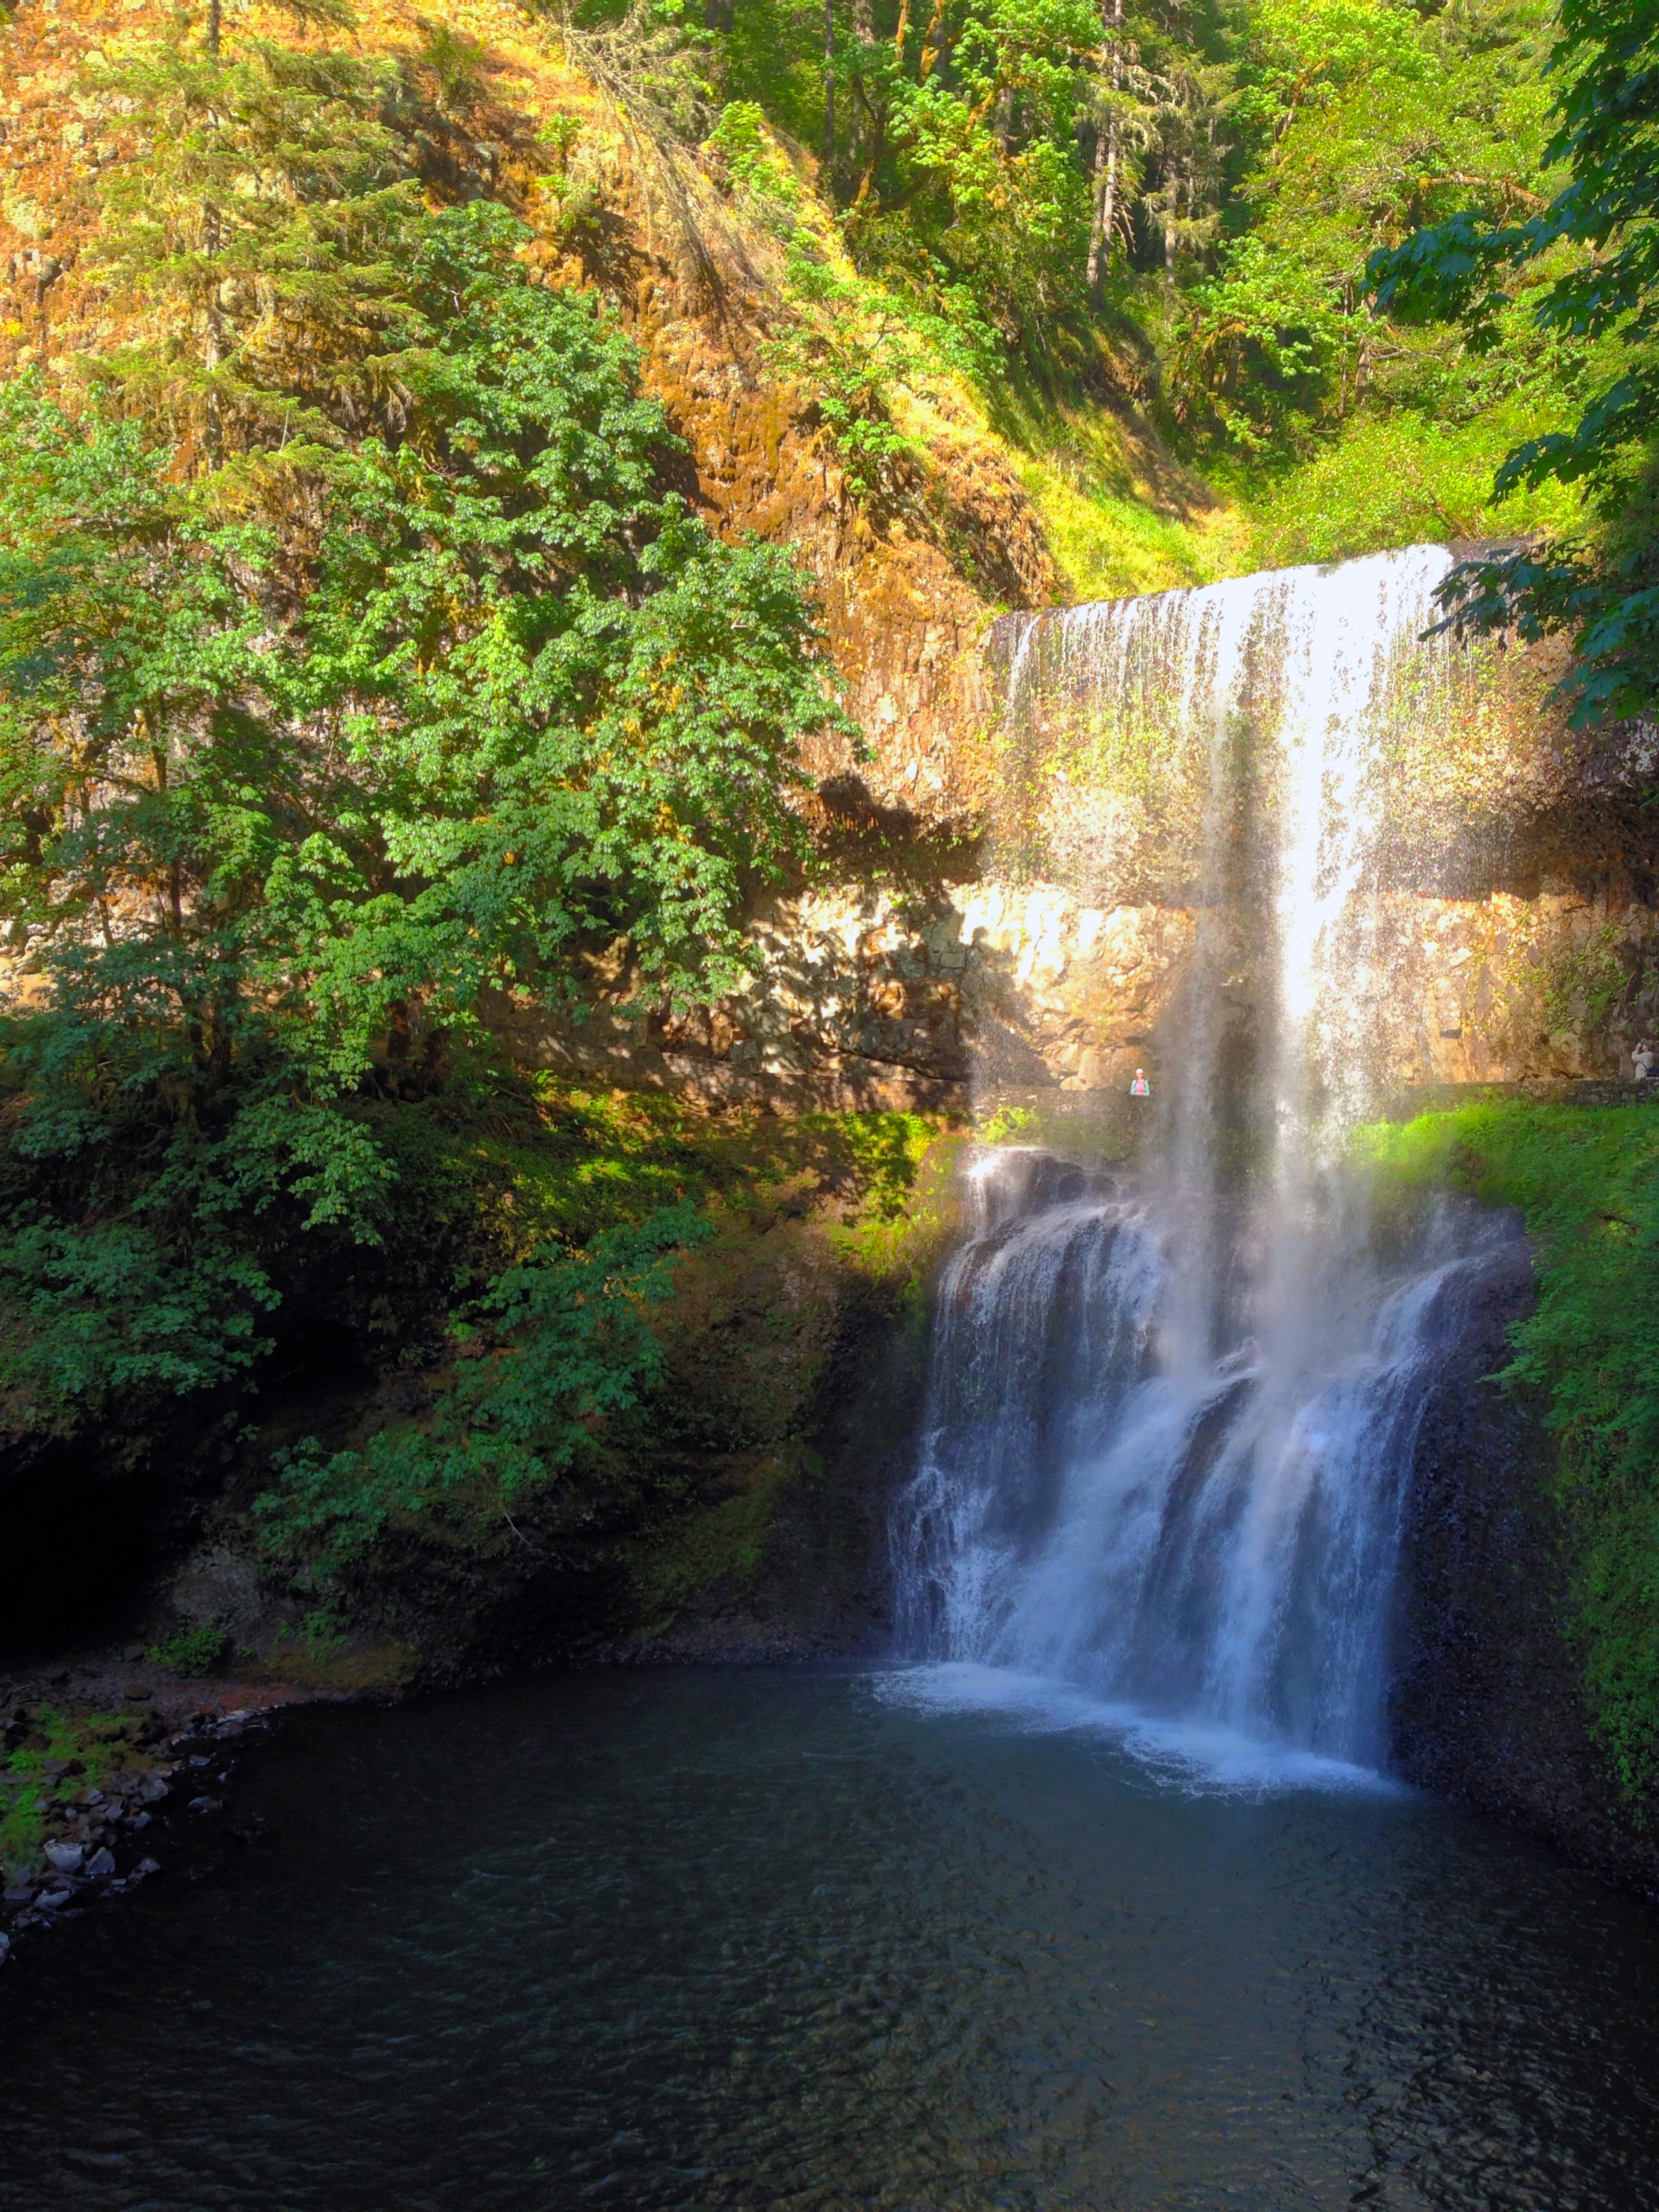 Lower South Falls, OR (93 ft)